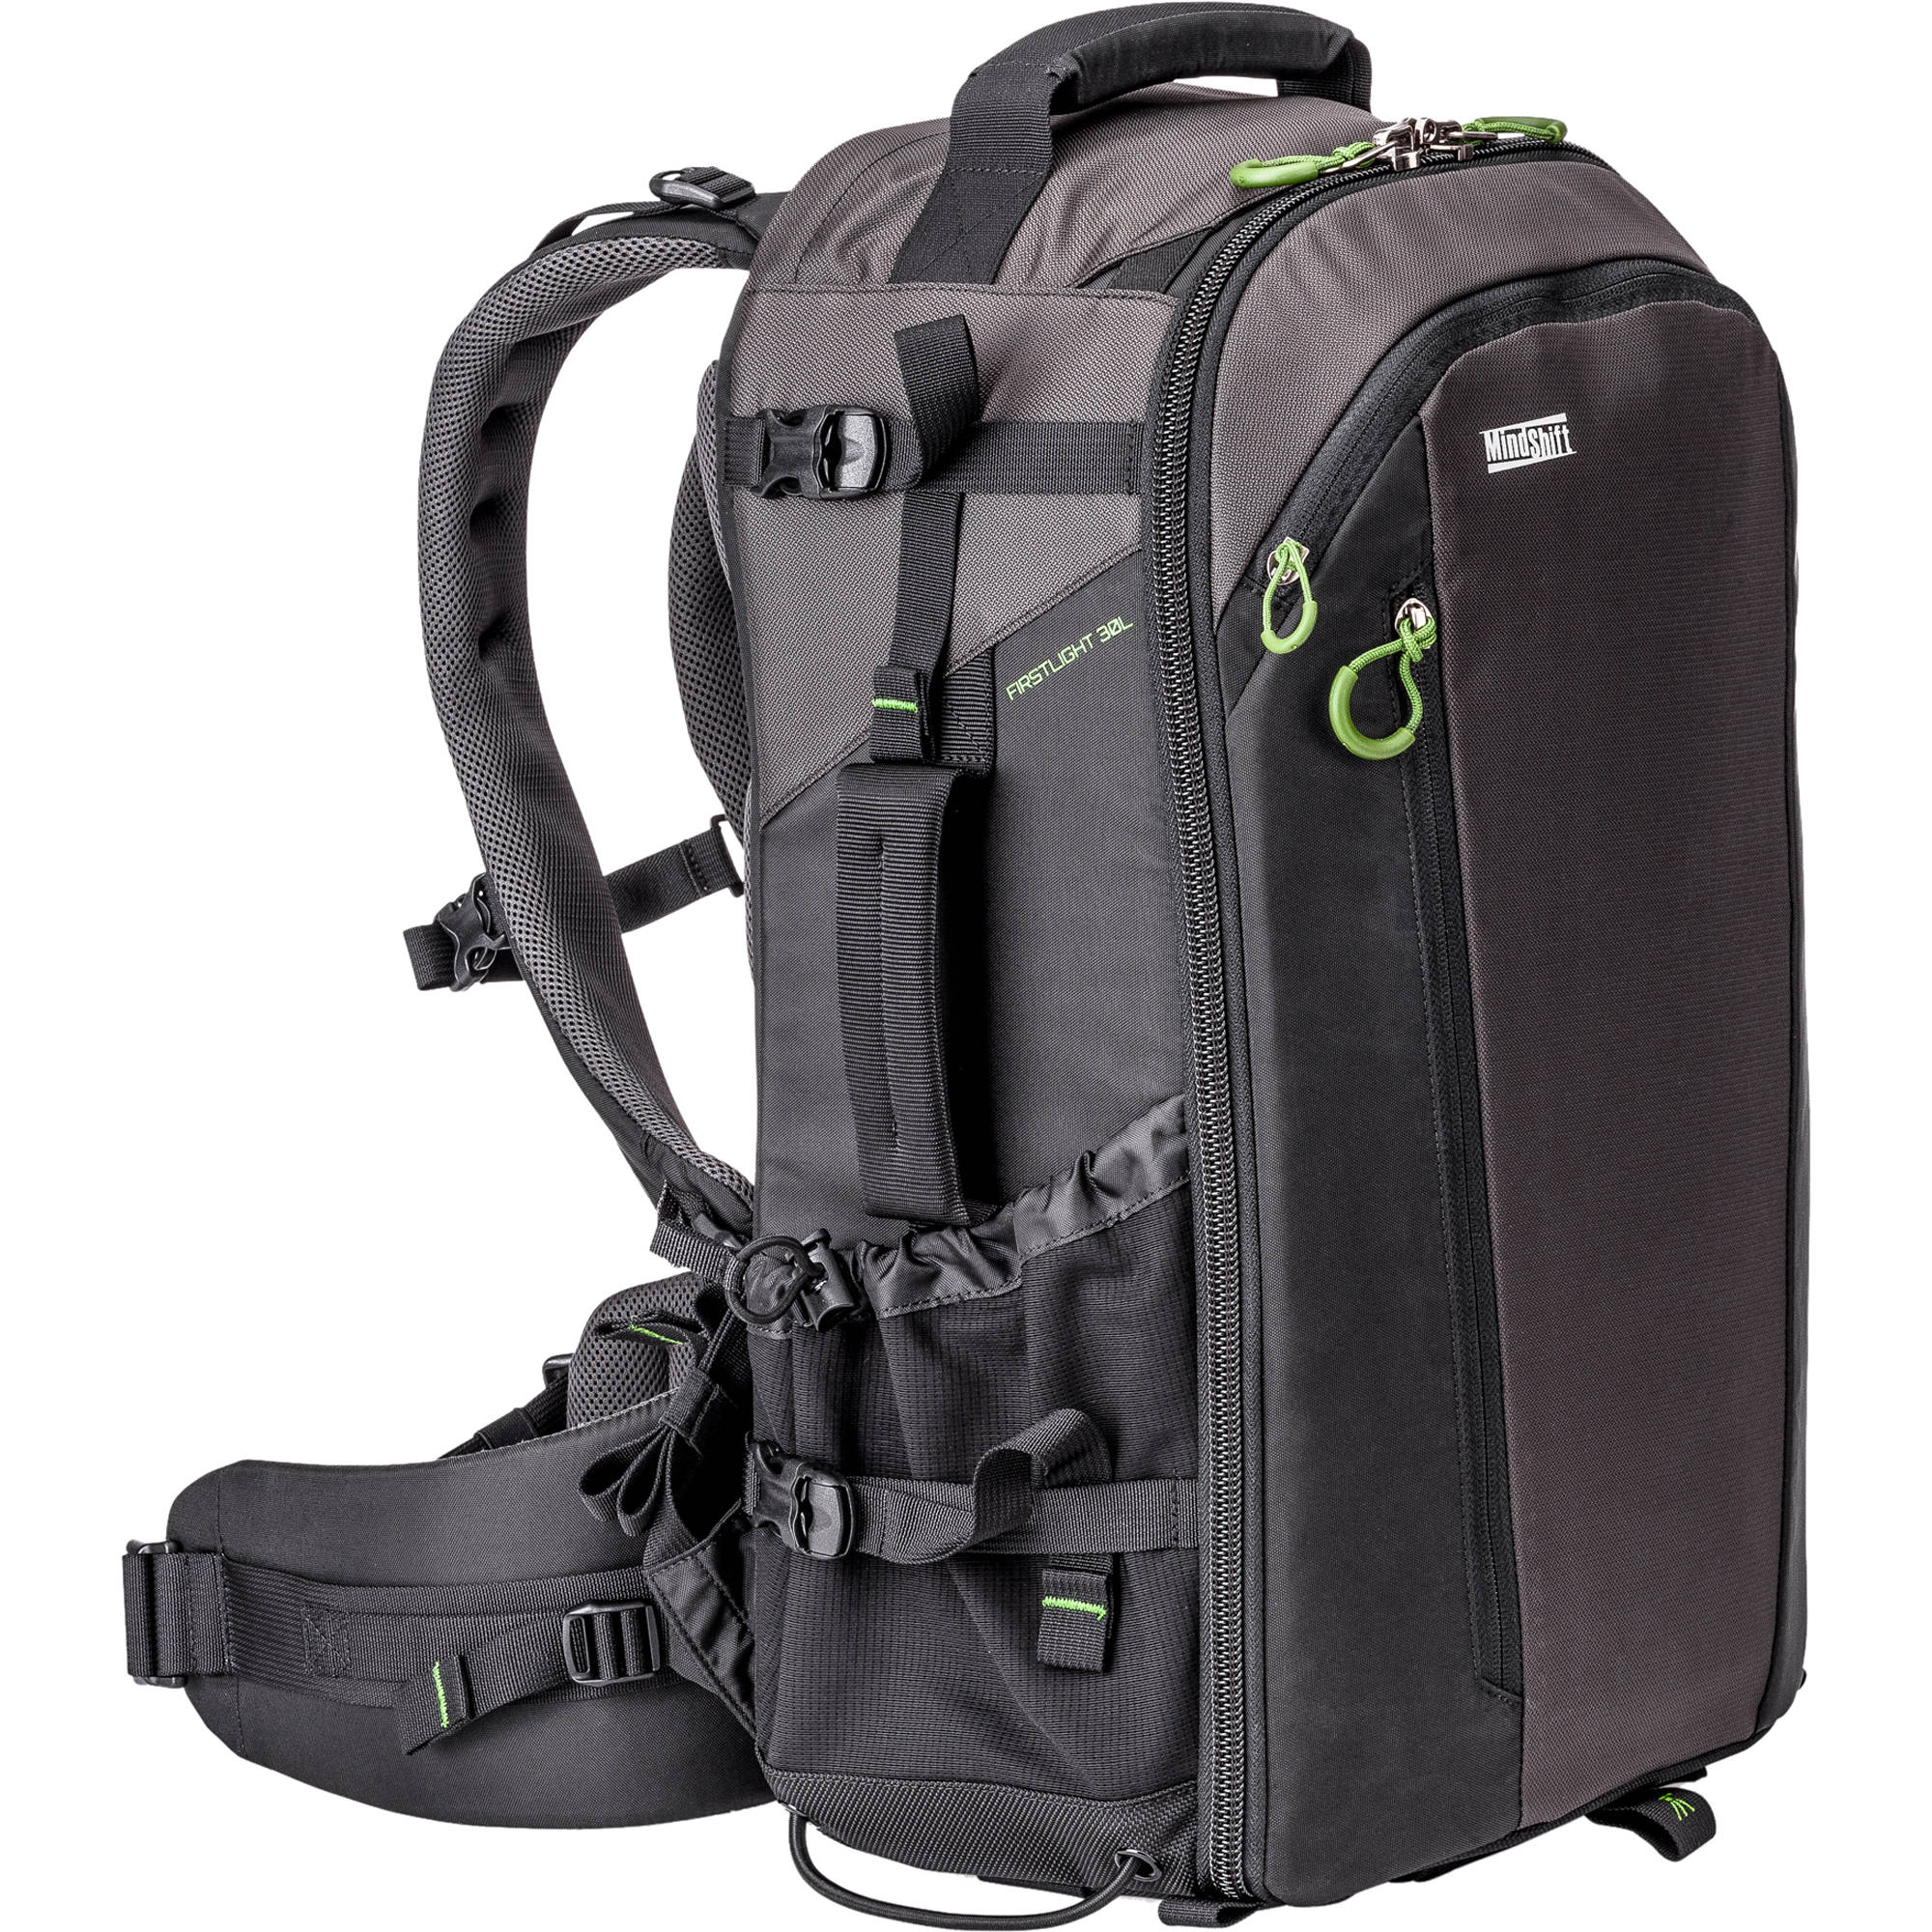 Most Rugged Backpack – TrendBackpack